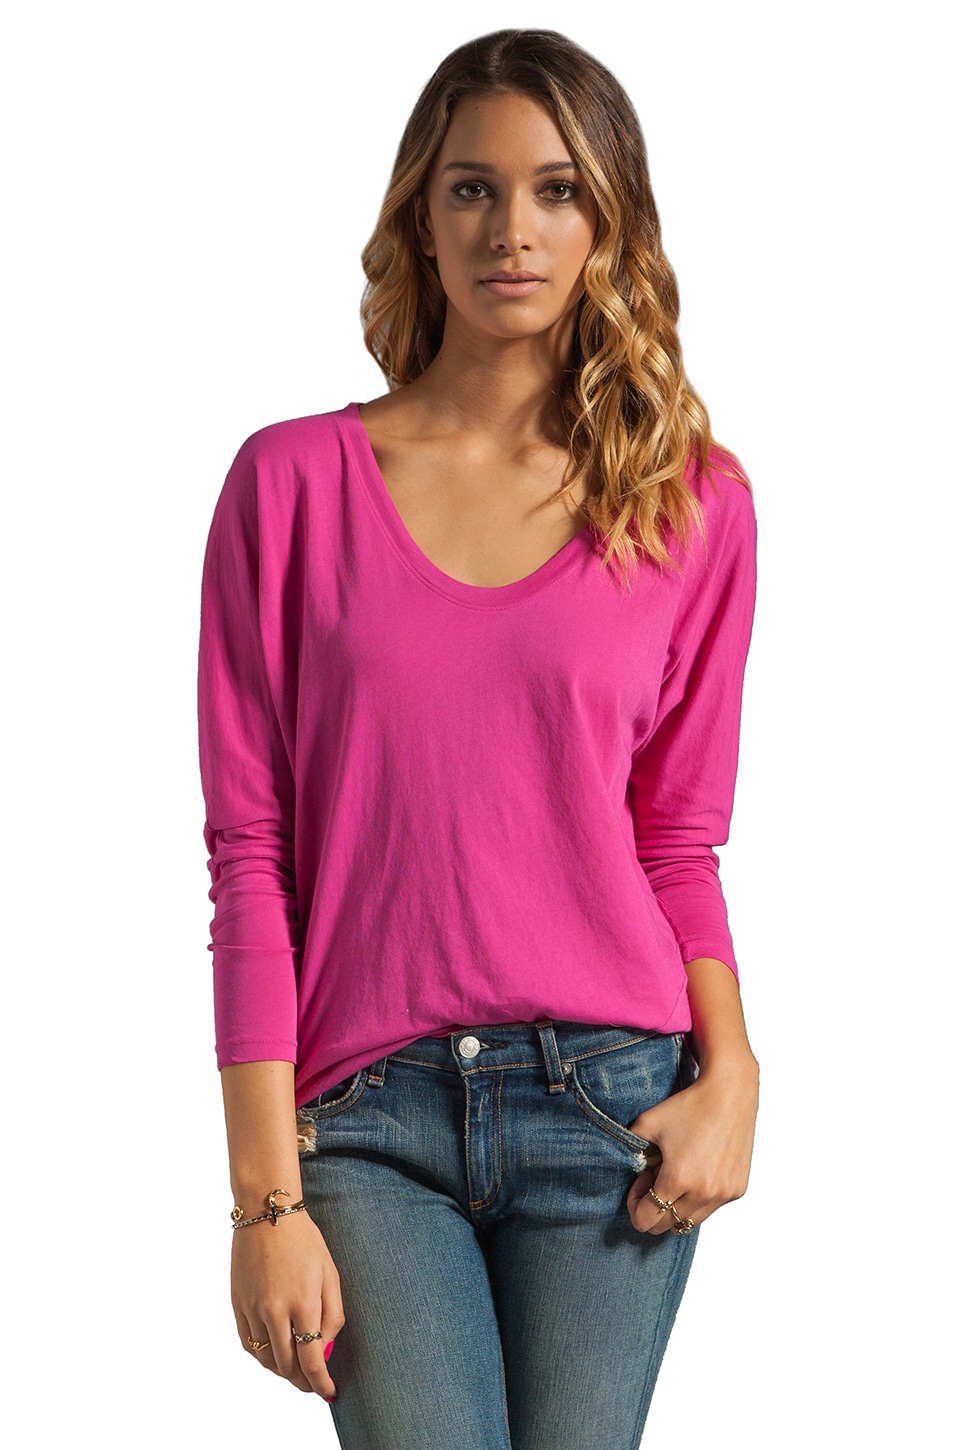 C&C California Long Sleeve Dolman Twist Tee in Very Berry